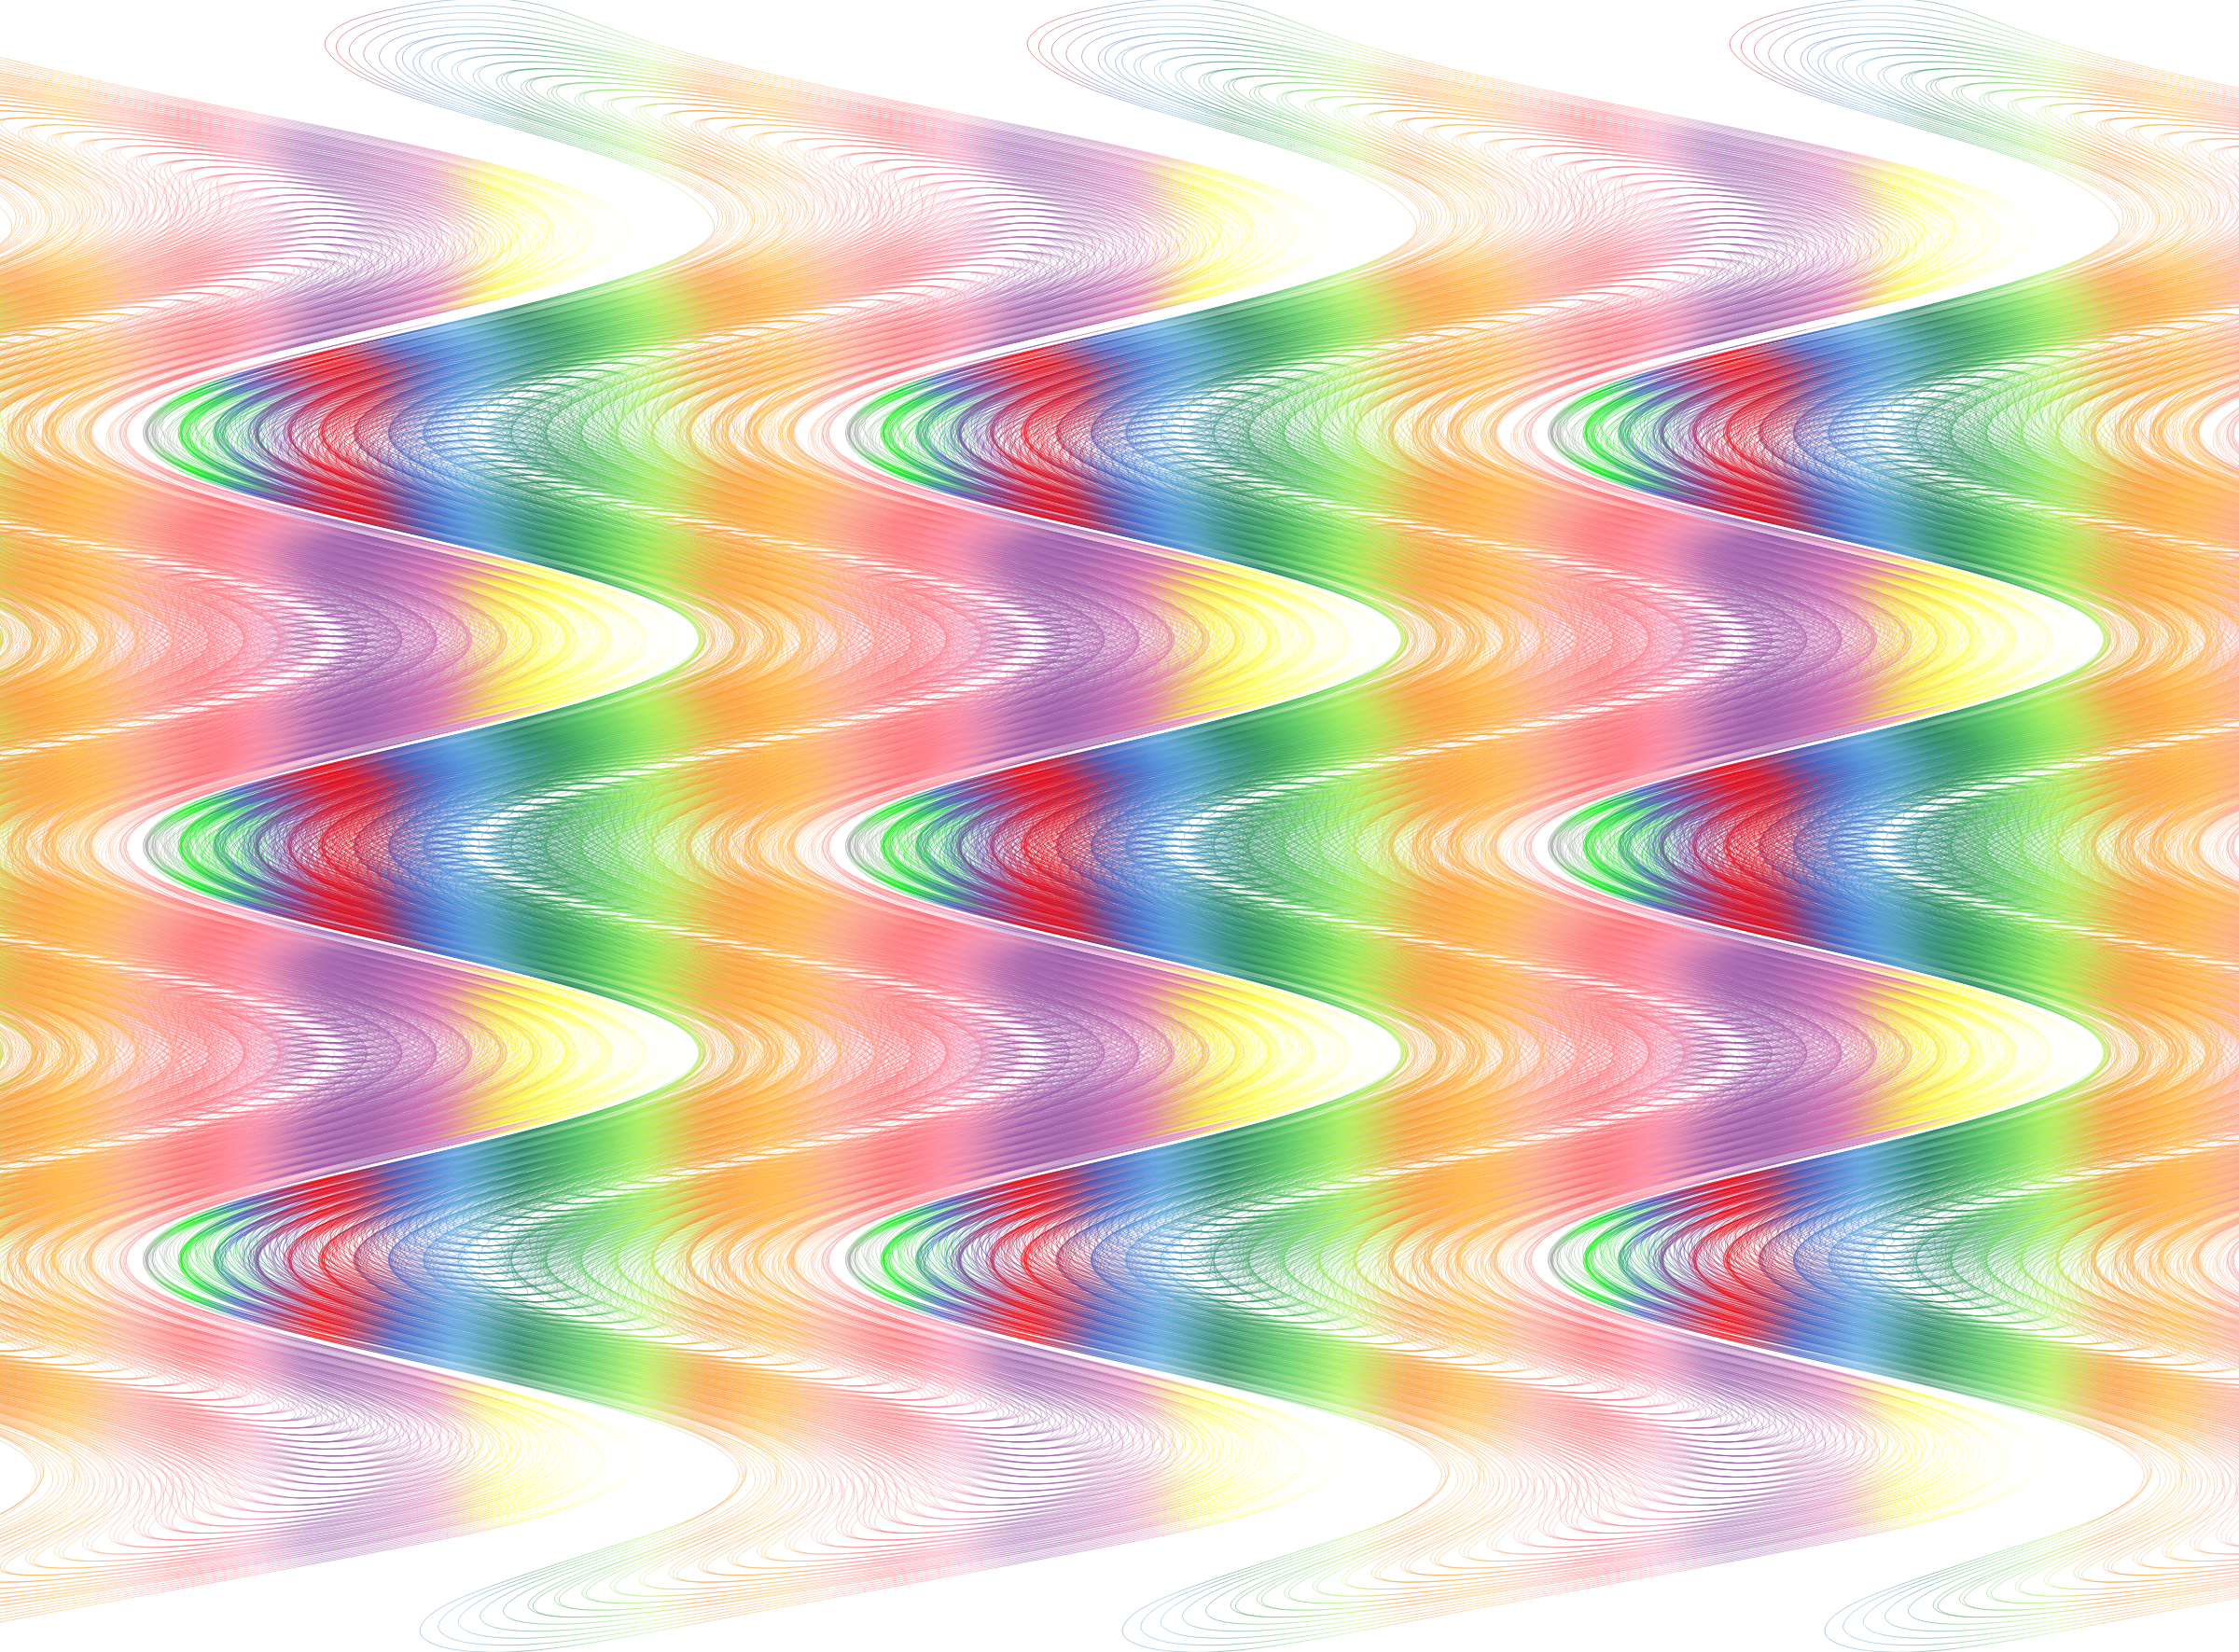 Chromatic line art minus. Abstract background png image library stock